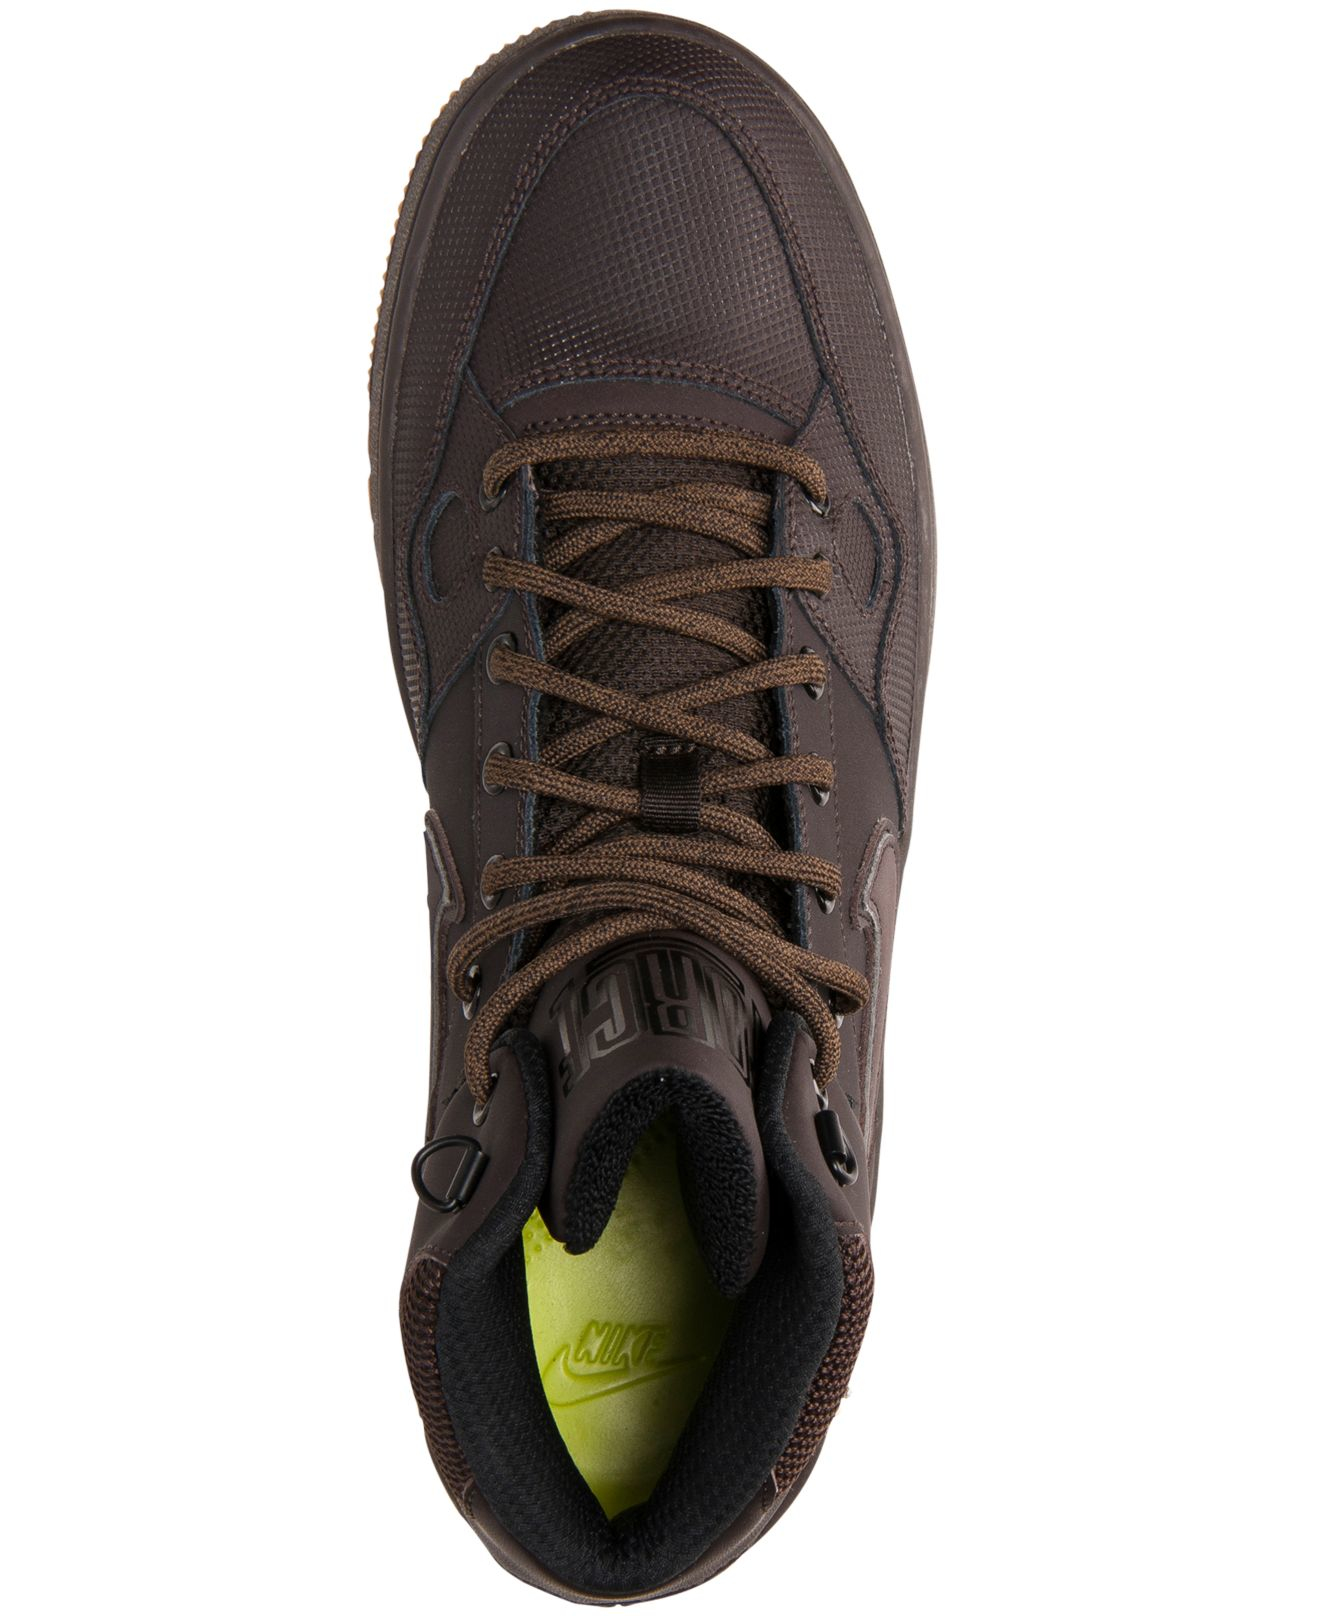 Lyst - Nike Men s Son Of Force Mid Winter Casual Sneakers From Finish Line  in Brown for Men 5f898db27